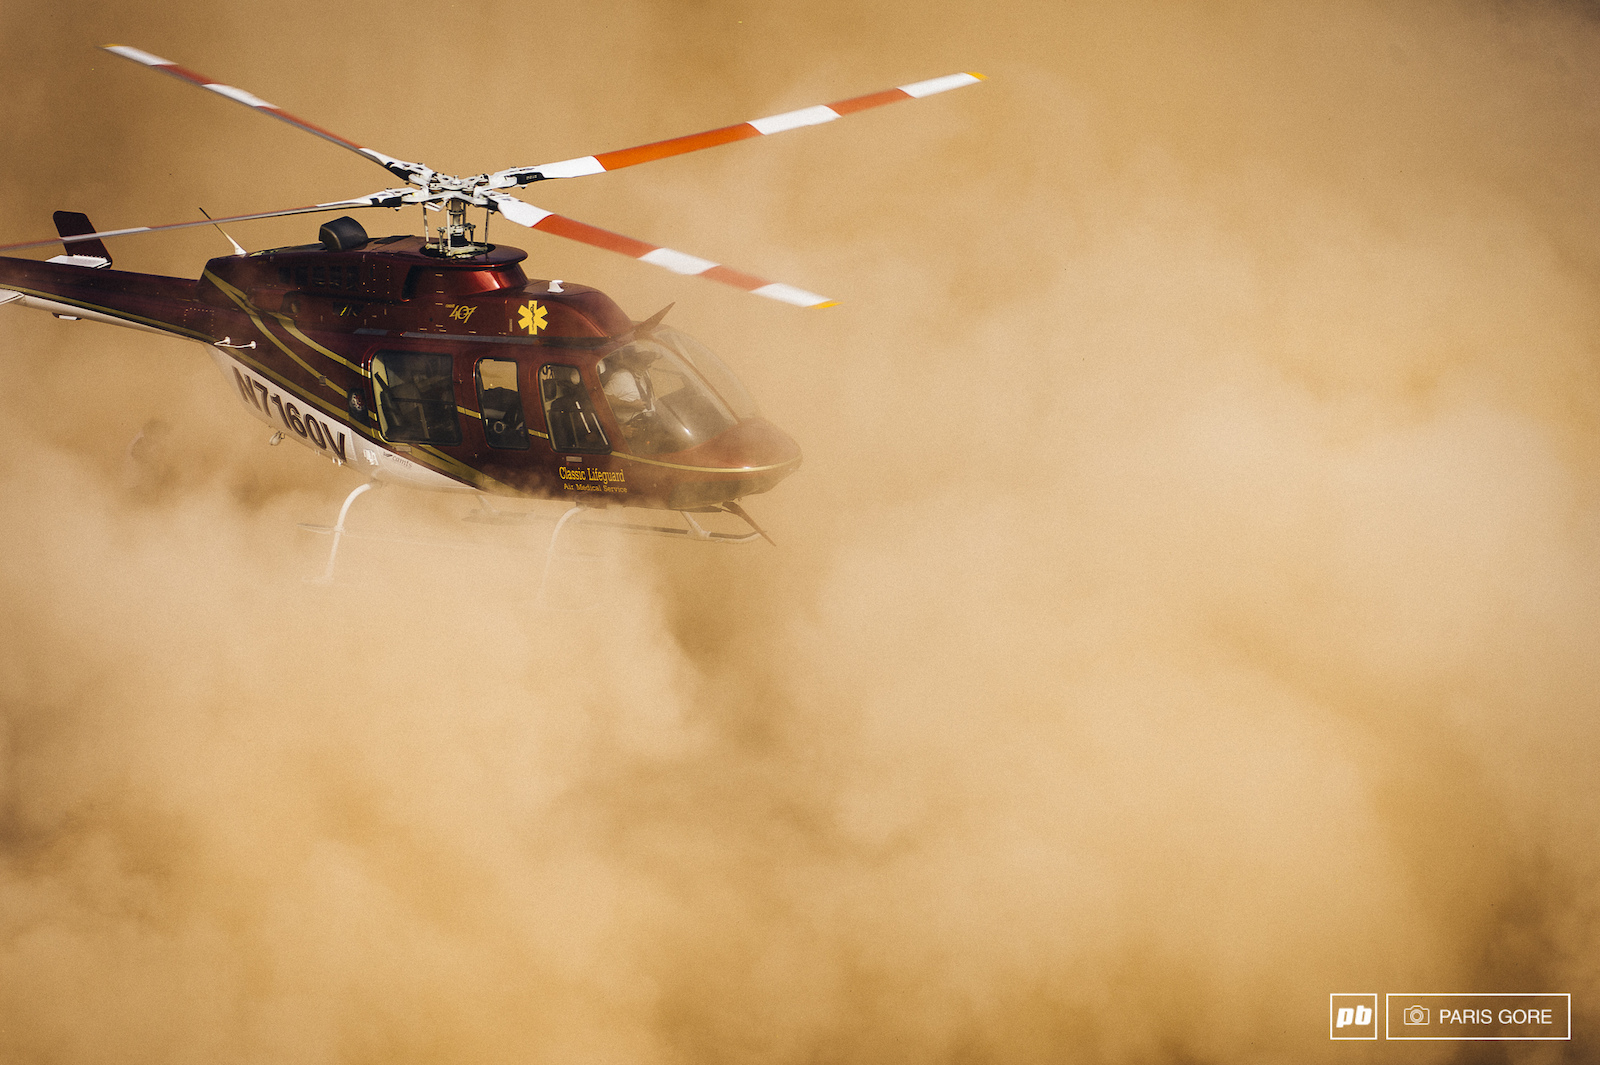 One ballsy pilot to land in the dust storm in order to transport Paul Bas off the Rampage site. Everyone from Pinkbike wishes Paul a speedy recovery.